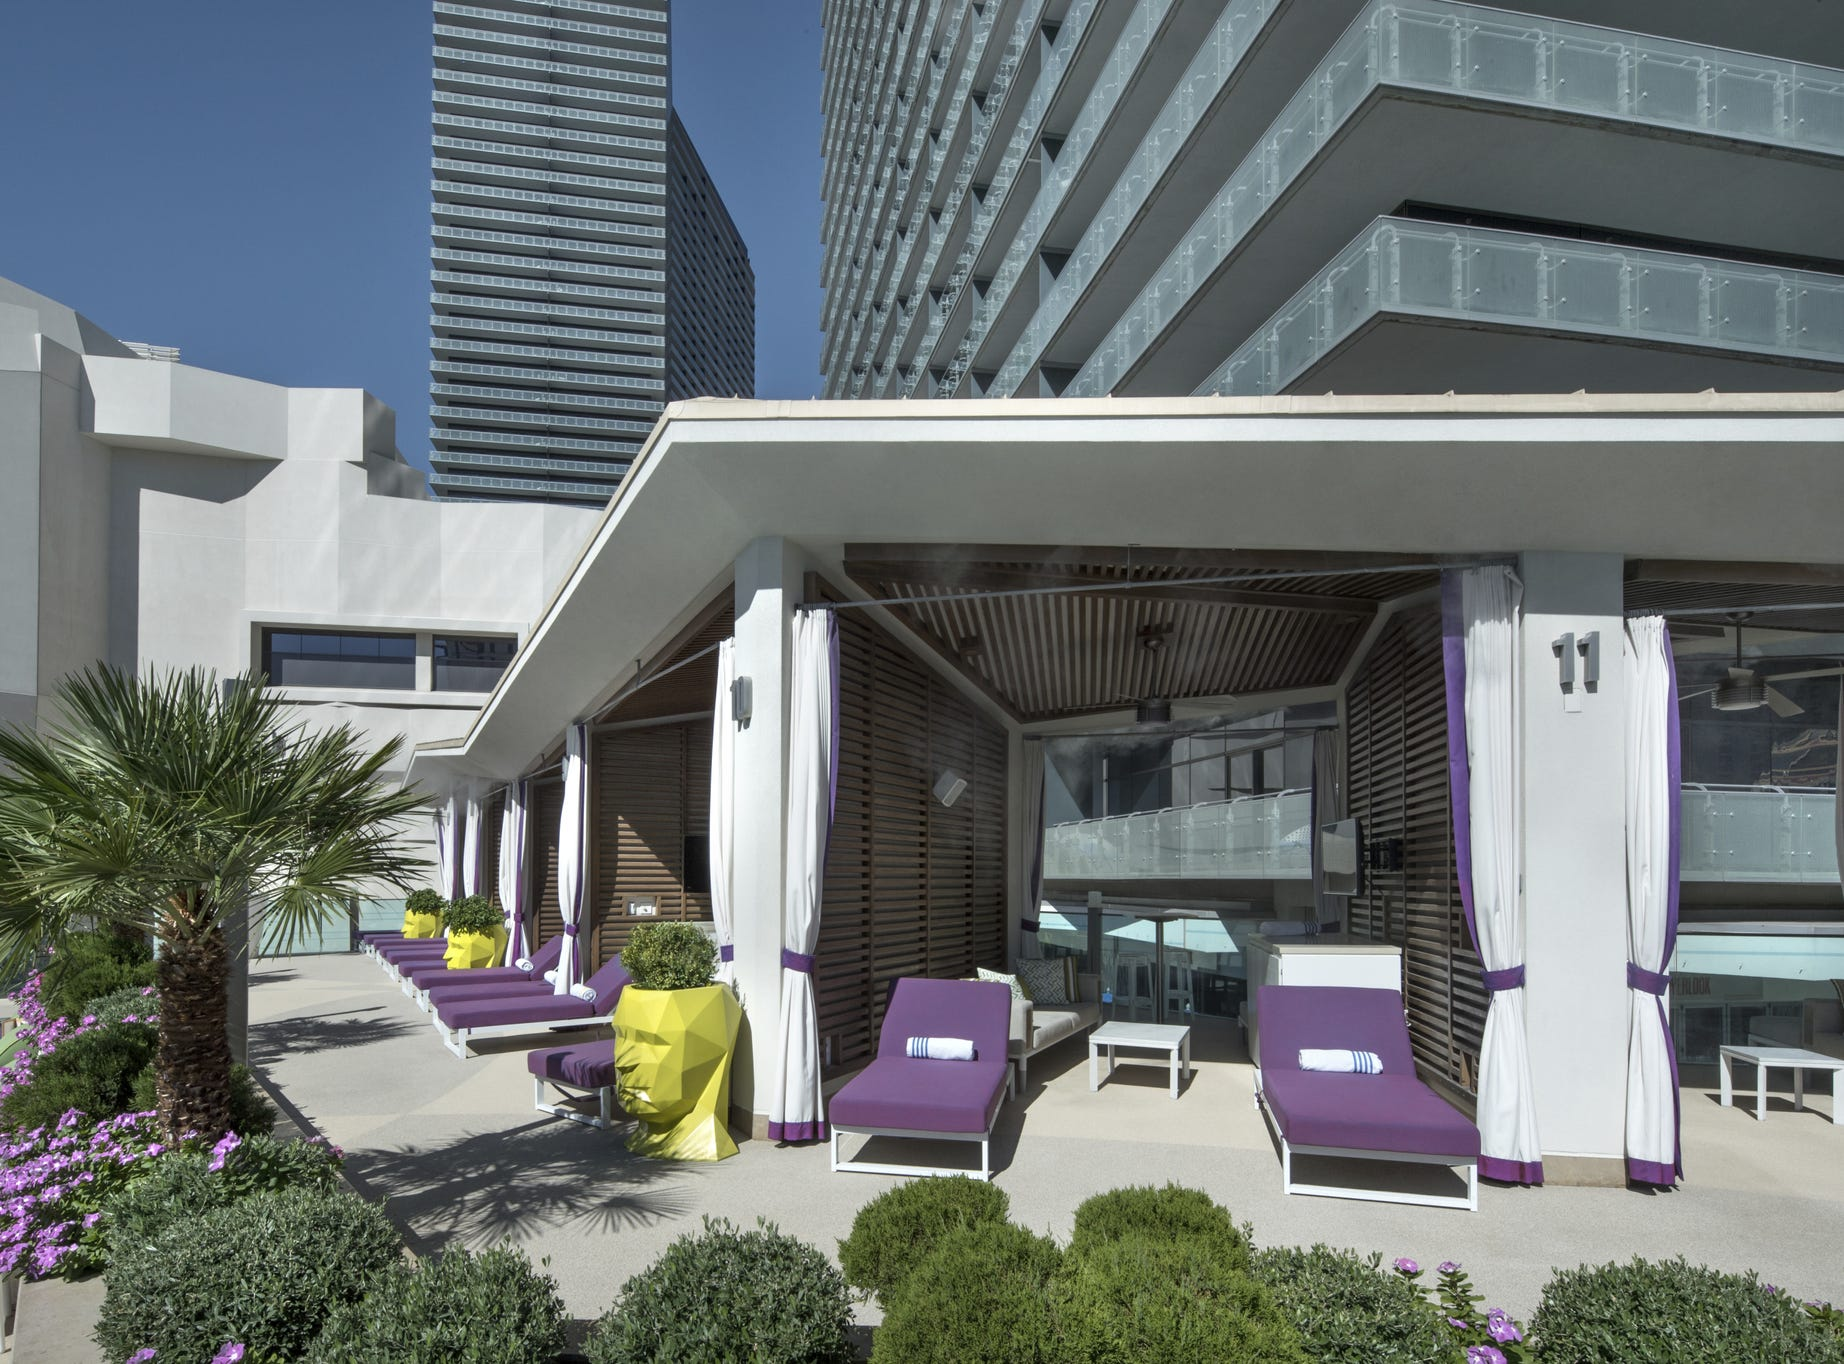 The Boulevard Pool at Cosmopolitan Las Vegas offers cabanas for rent. The include a fridge stocked with soda and water, dedicated server, fruit plate, TV, sunscreen and more. The price for a weekend day during spring break: $900. That includes food and beverages.